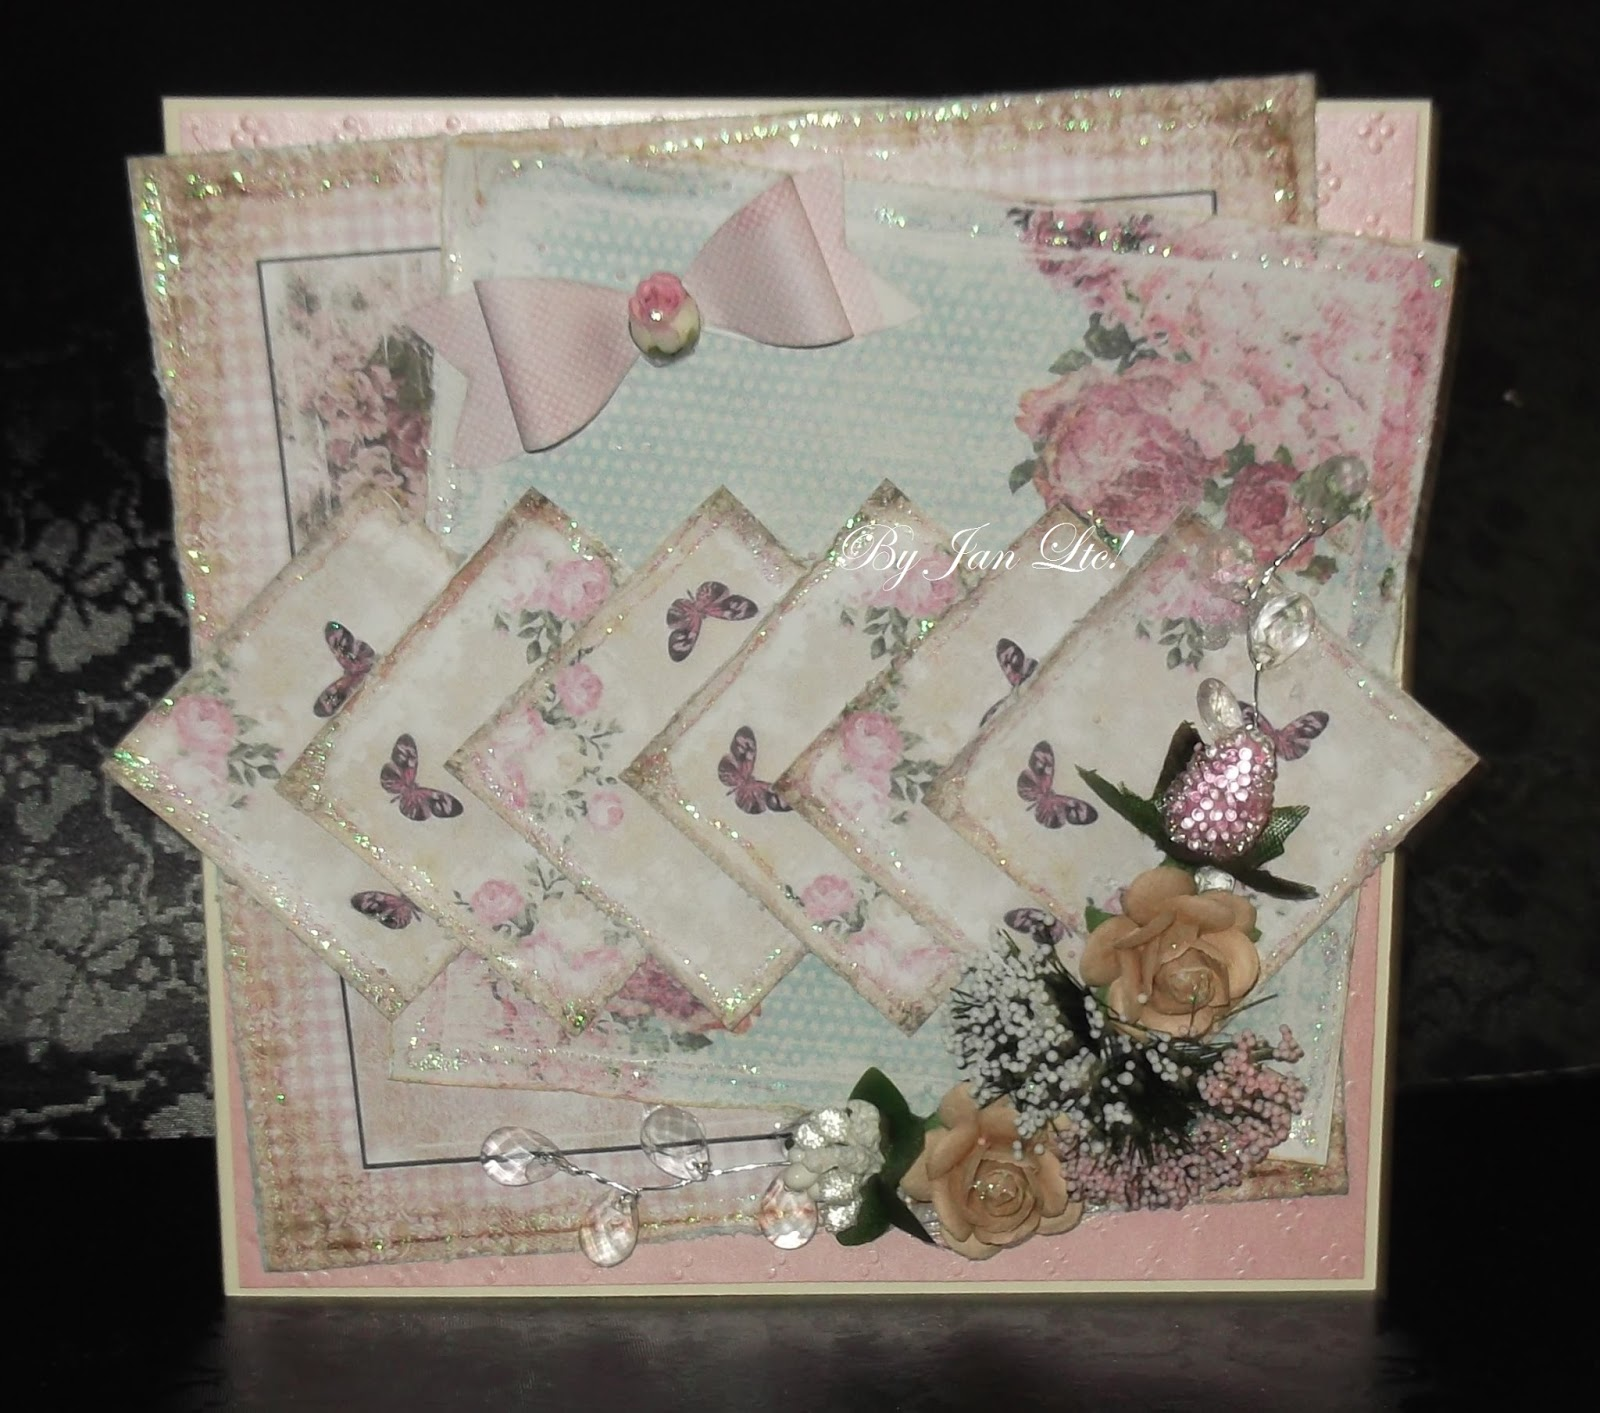 Loves to craft: Shabby Chic!